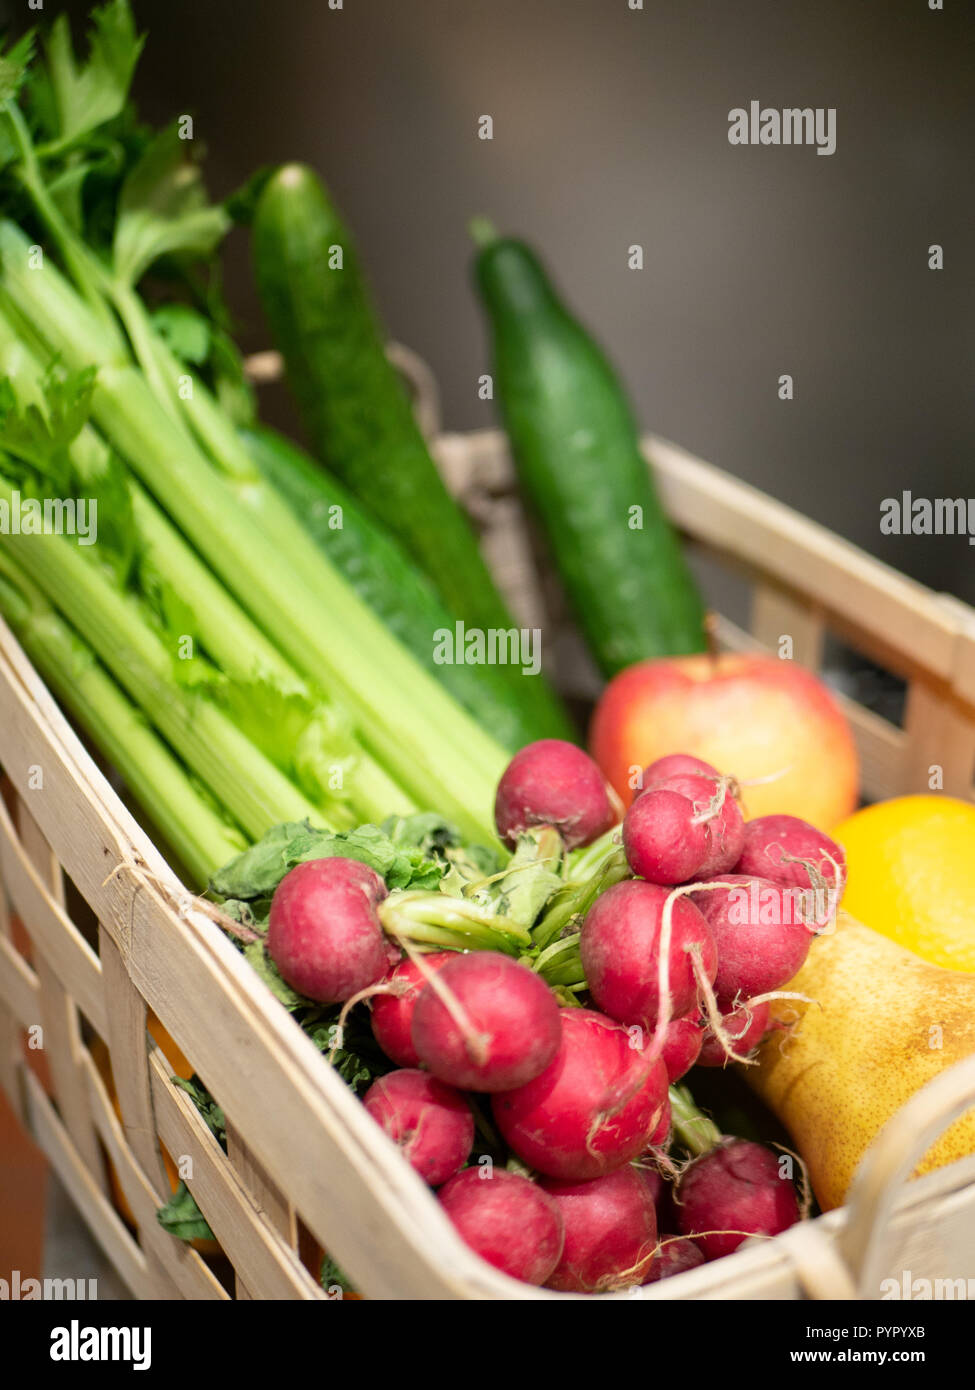 wooden basket, filled with radish, celery, cucumber, pears and apples - Stock Image